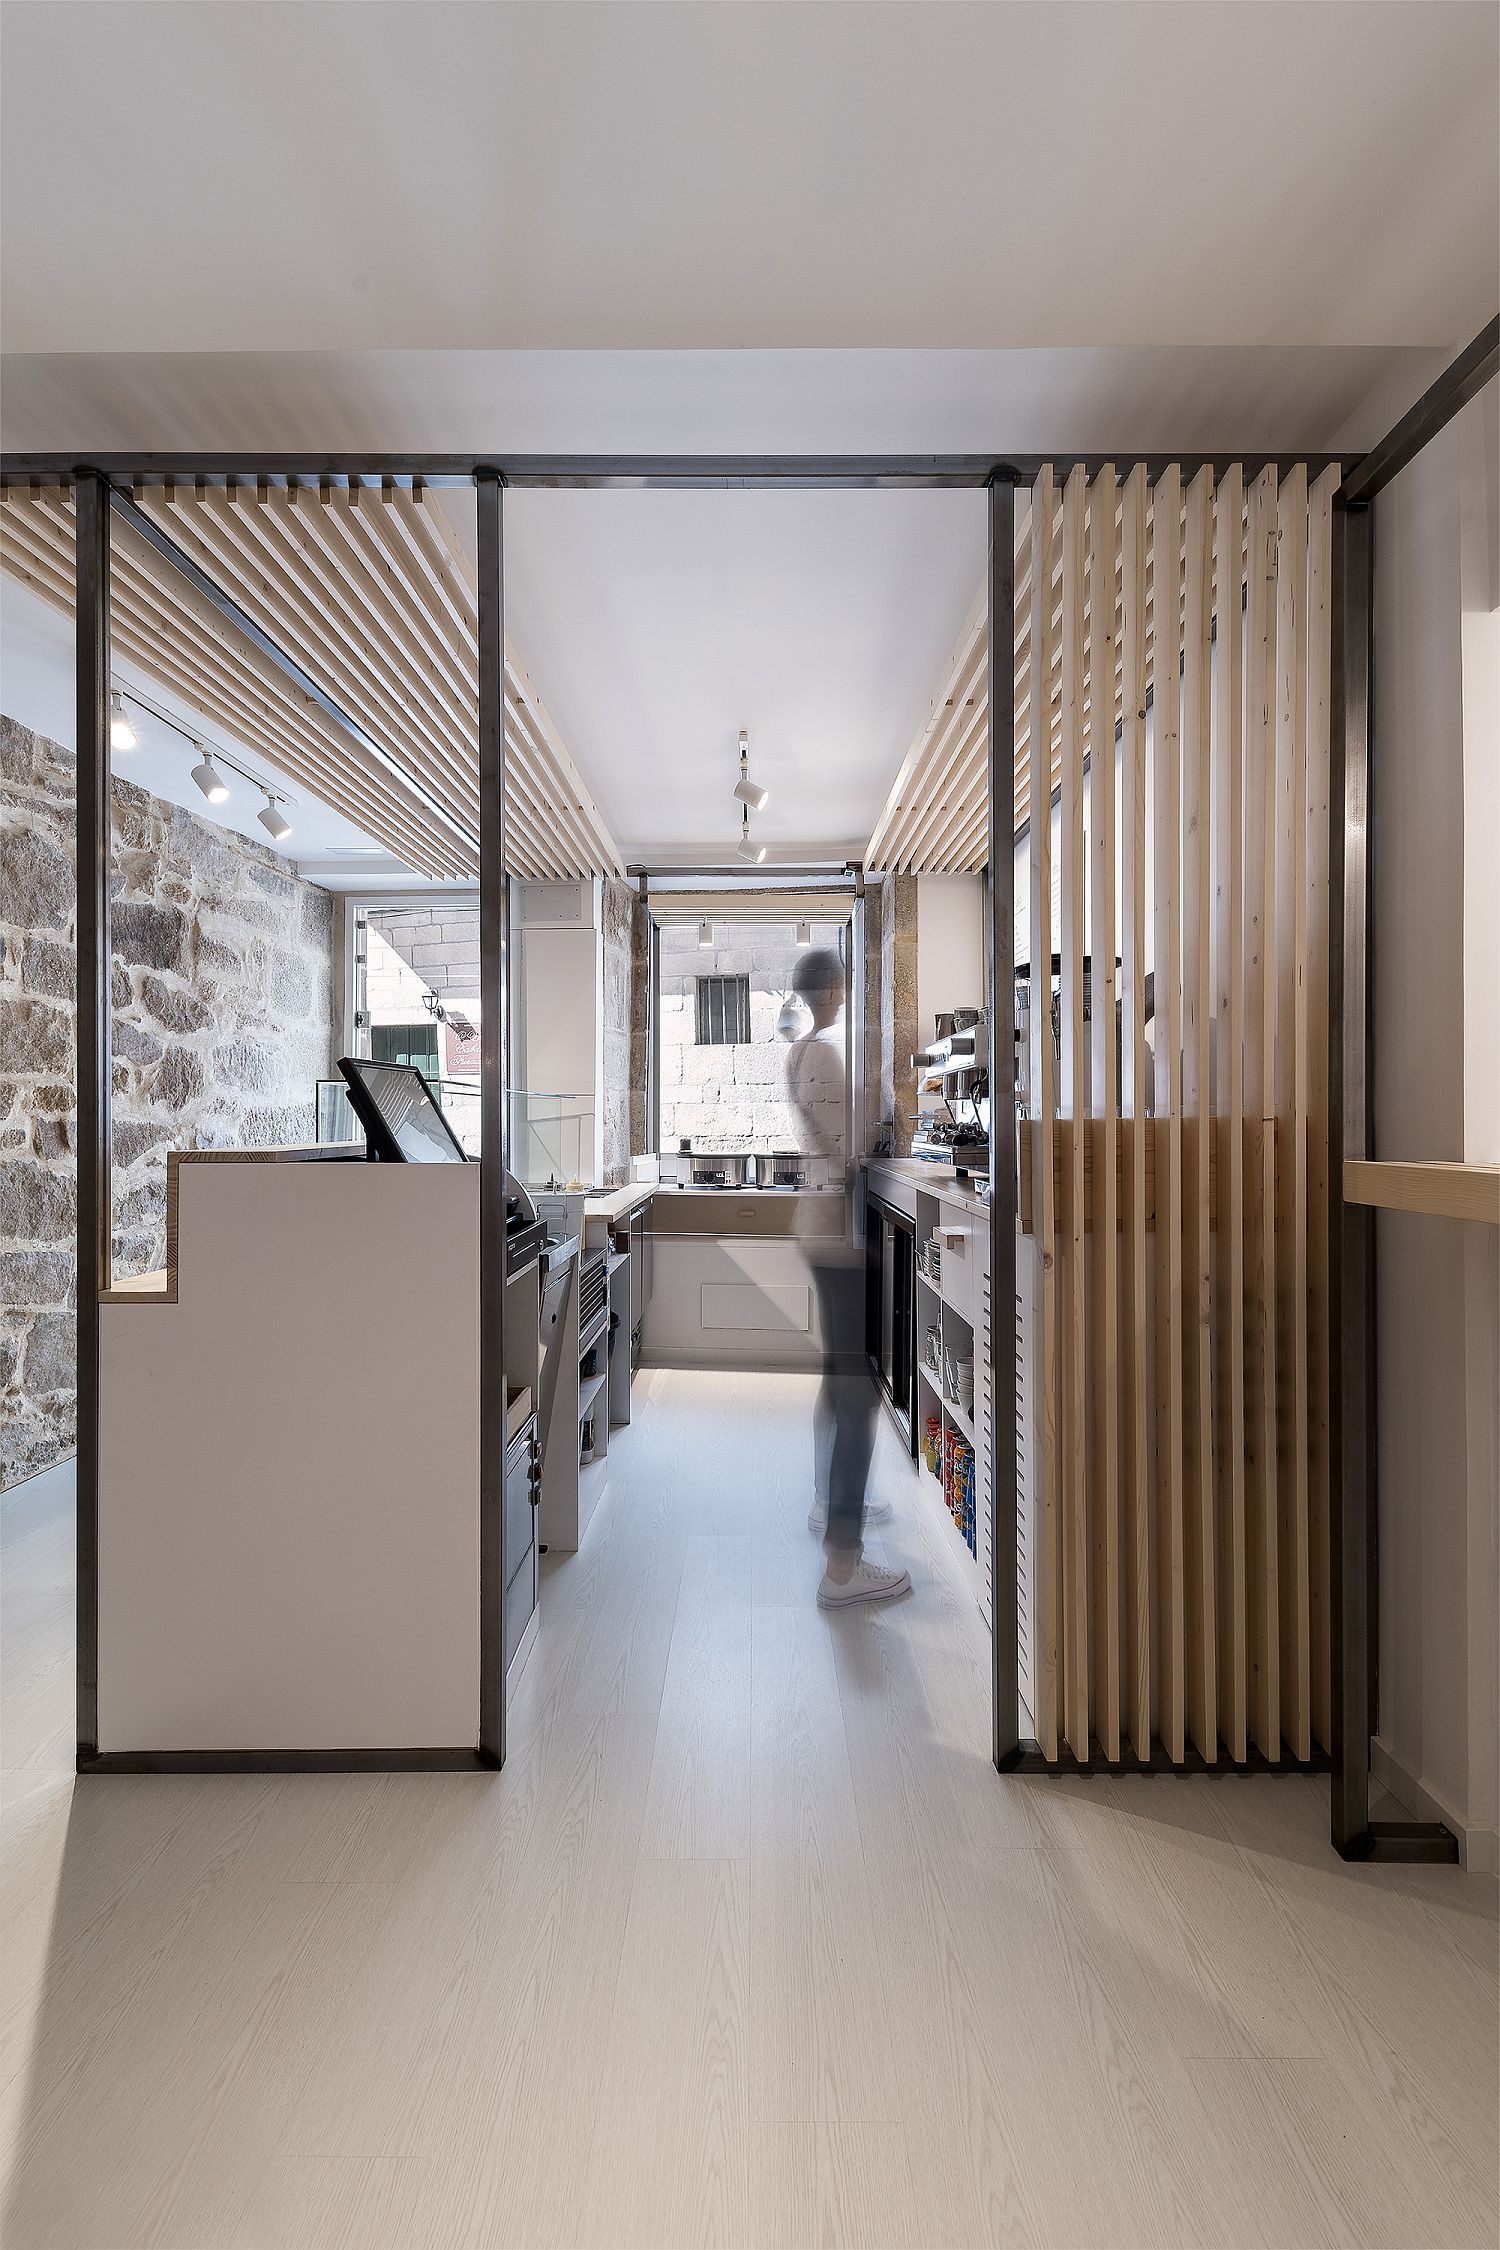 Smart use of space inside the modern eatery makes it more efficient